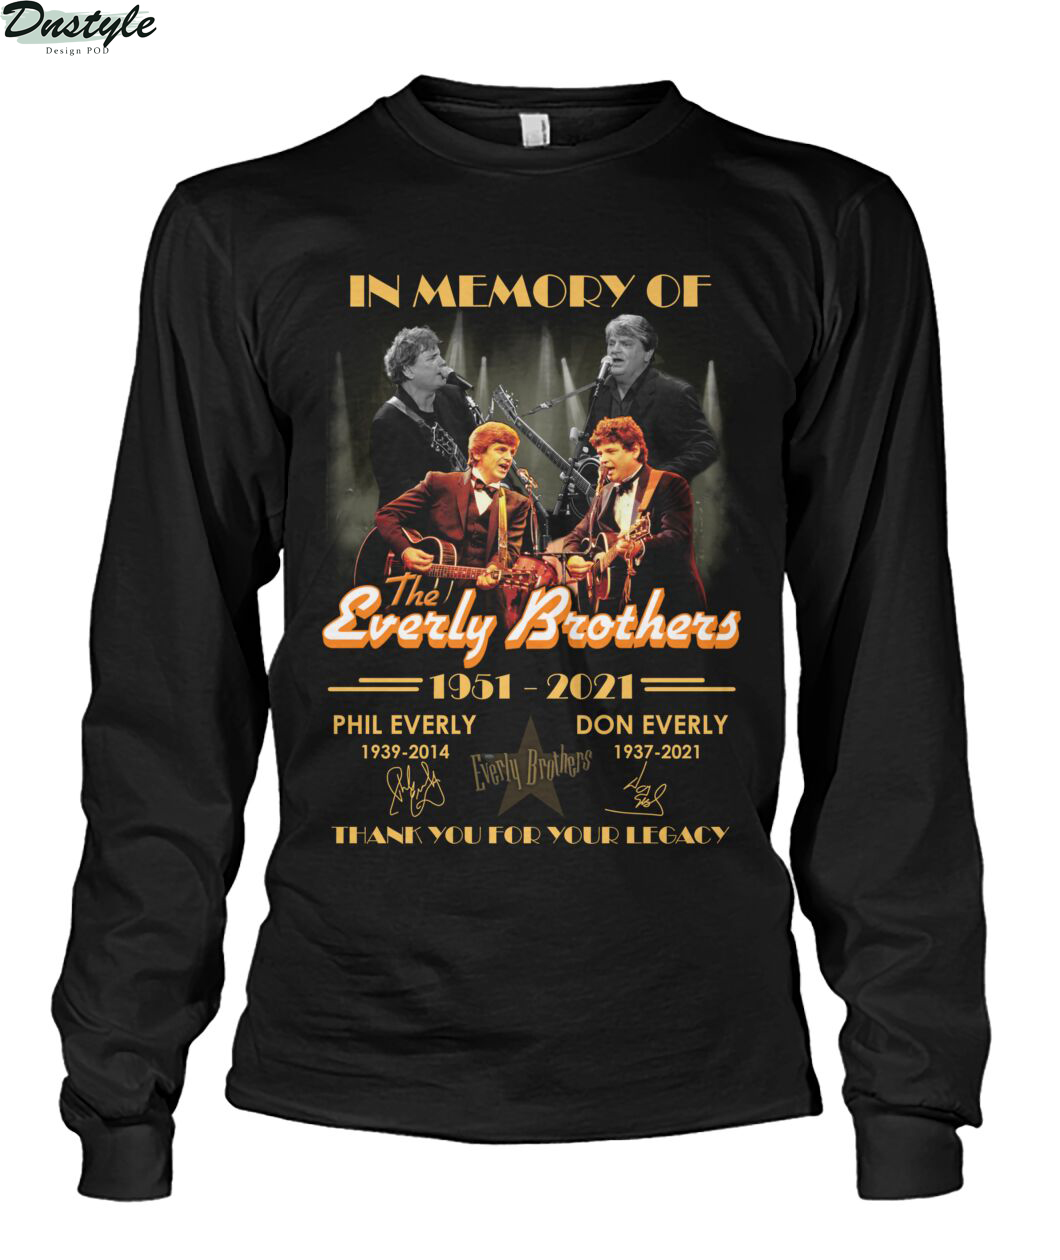 In memory of the everly brothers thank you for your legacy long sleeve